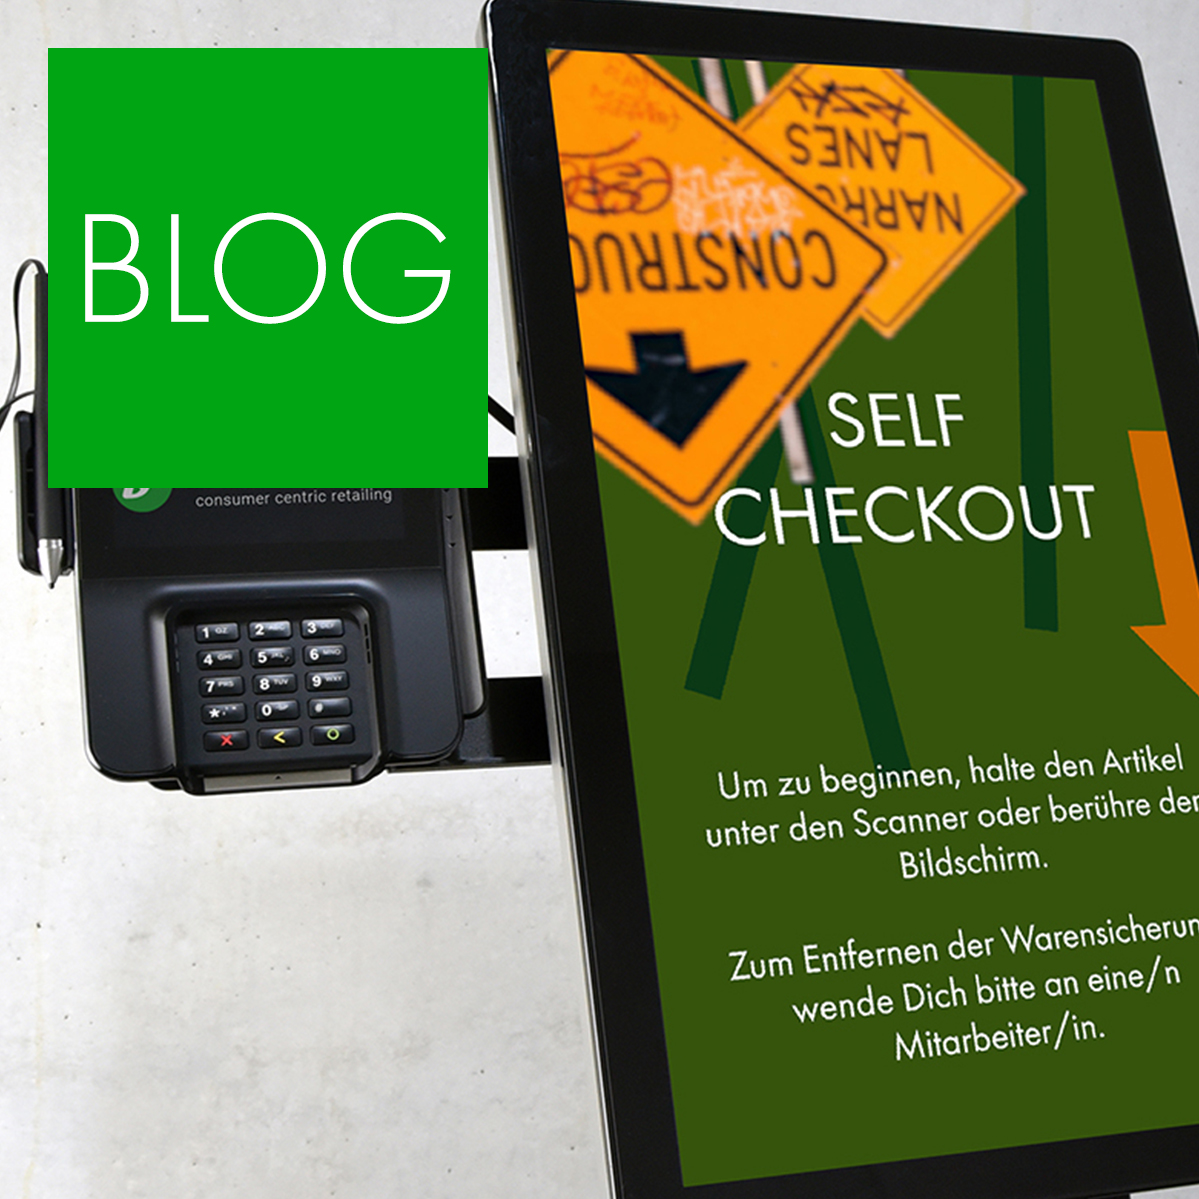 Blogpost: Produktlaunch Self Checkout